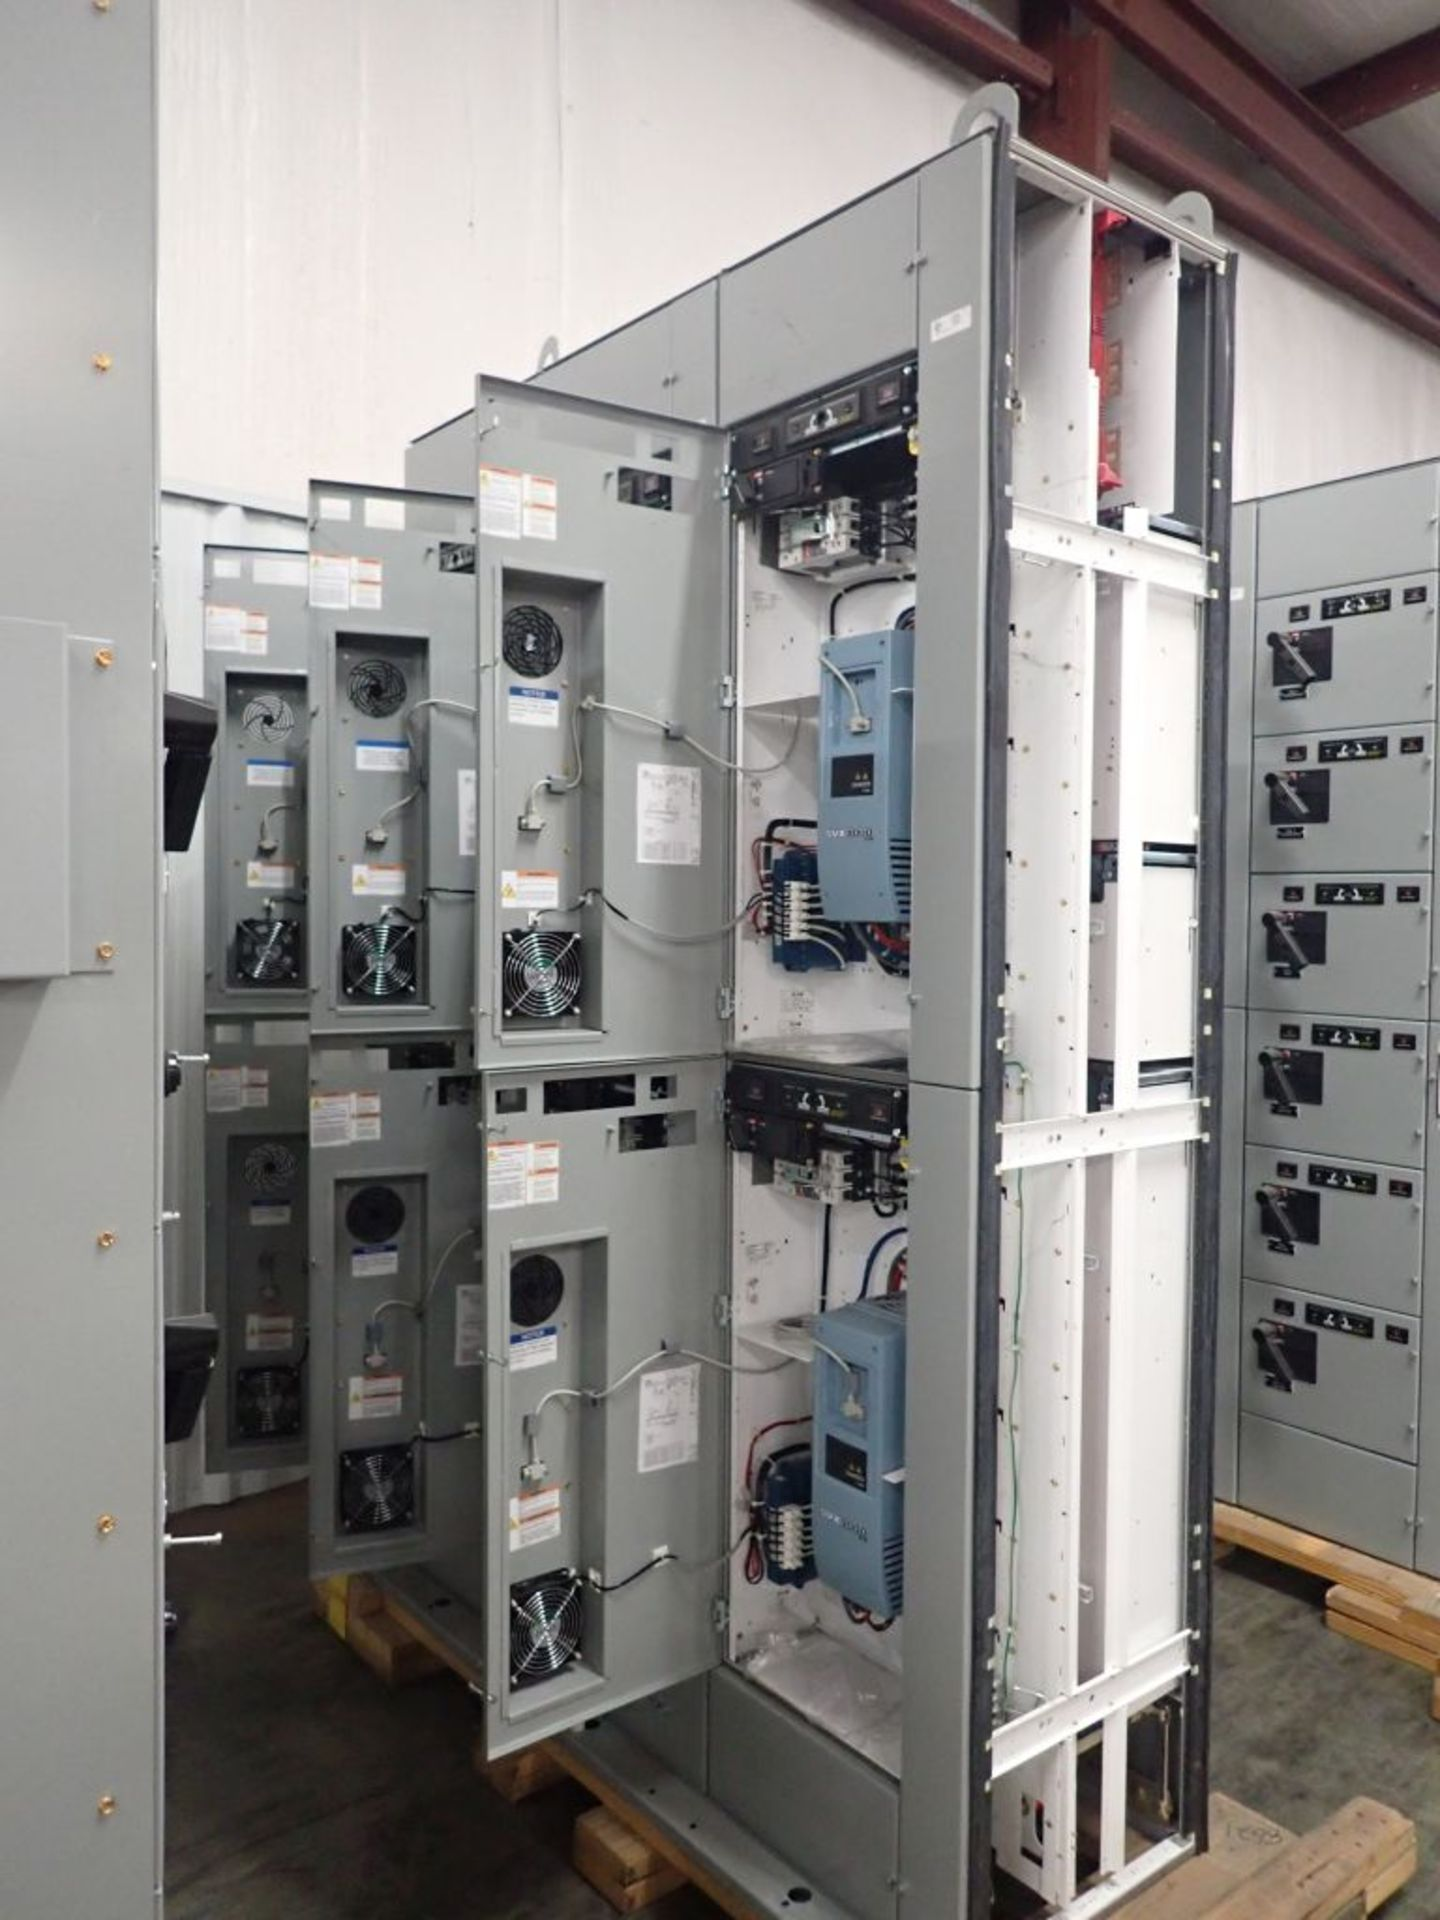 Eaton Freedom 2100 Series Motor Control Center | (2) F206-15A-10HP; (1) FDRB-250A; (1) FDRB-400A; ( - Image 5 of 104